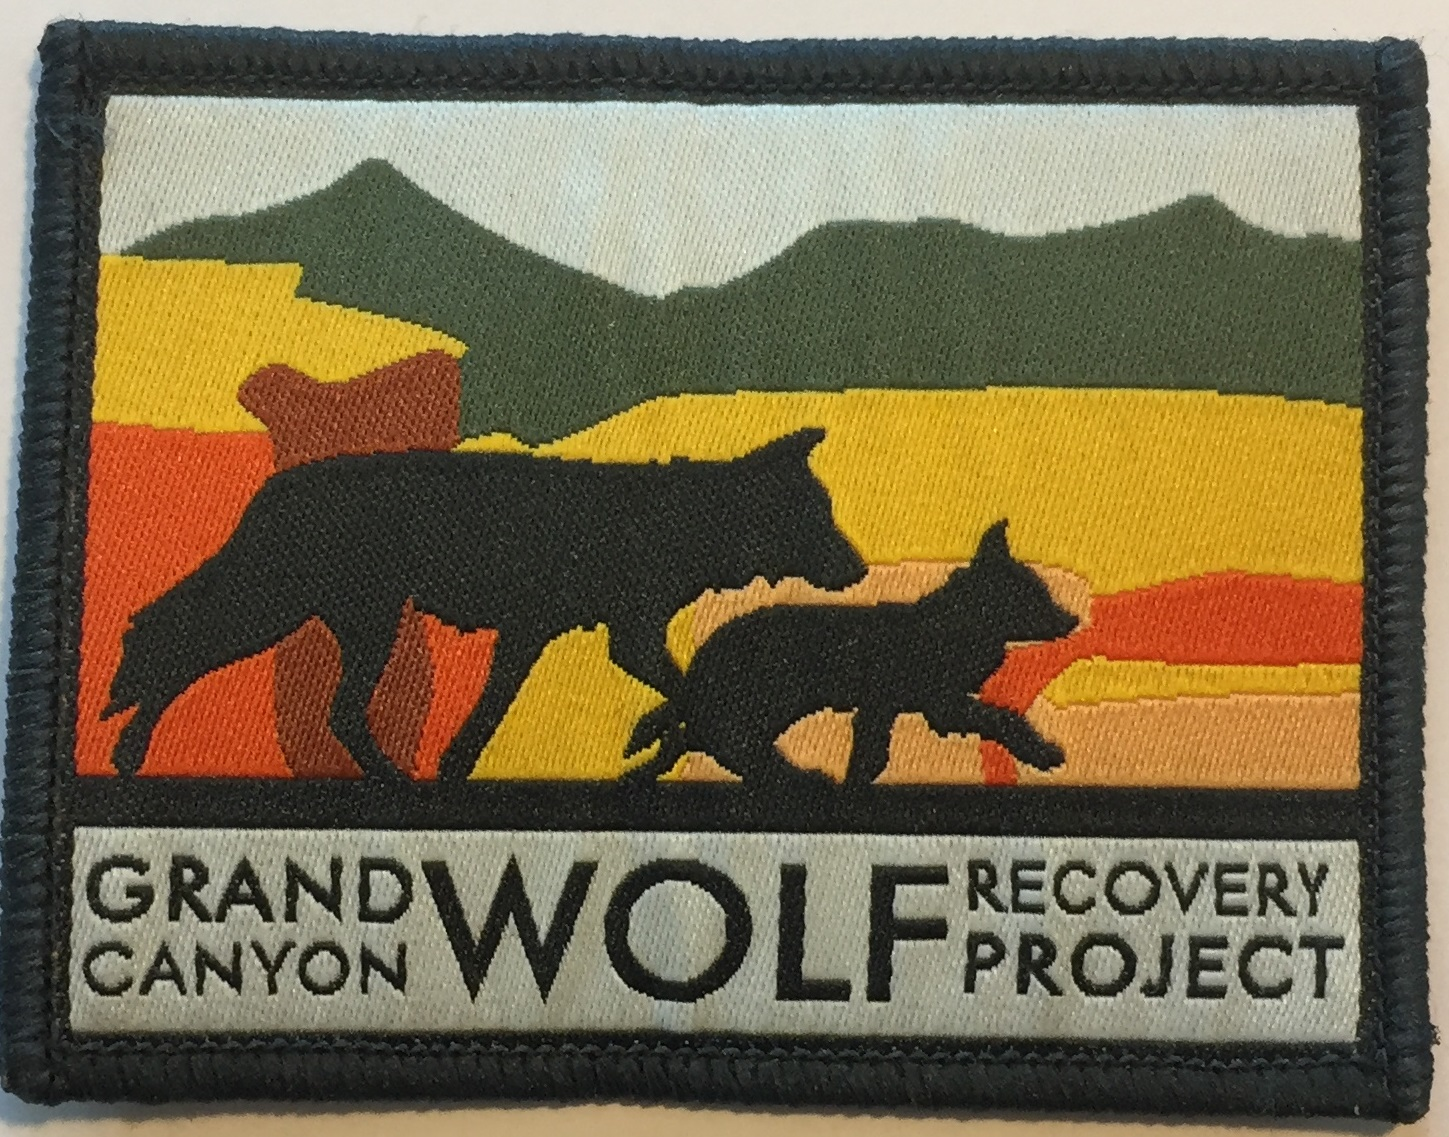 GCWRP logo patch